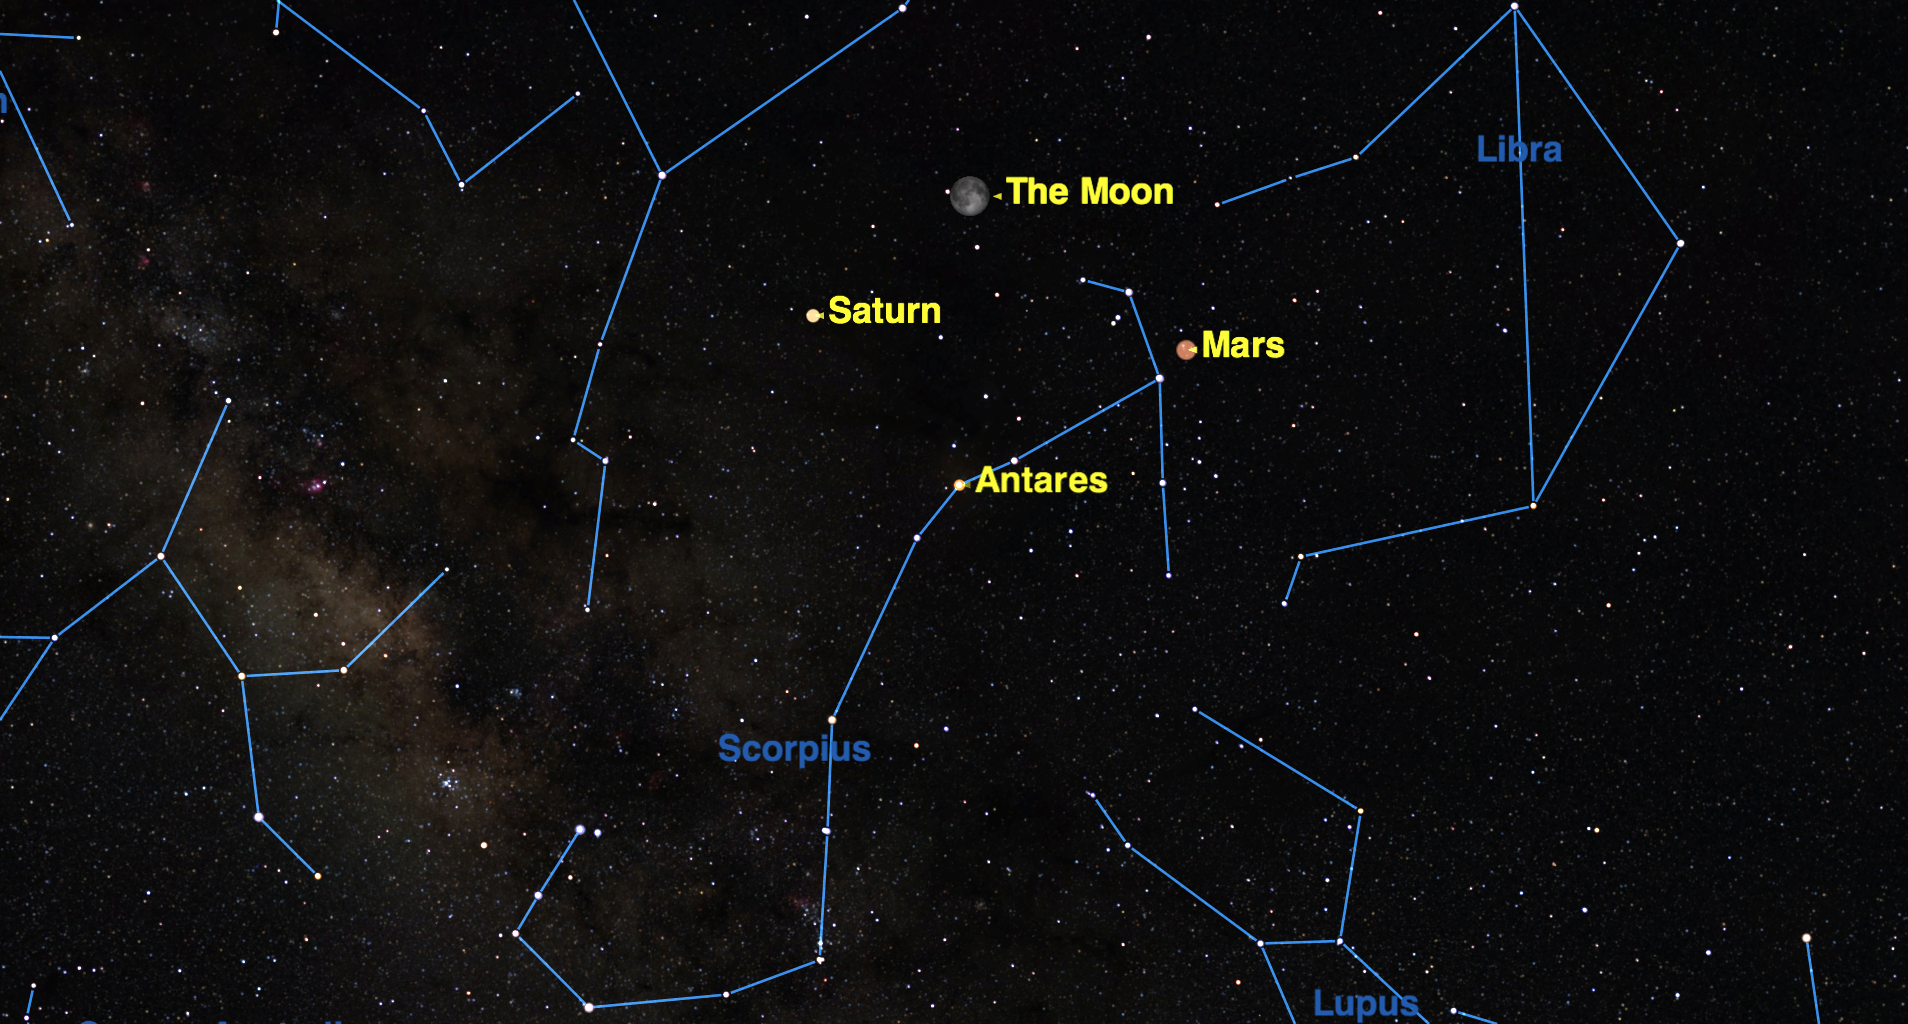 On Sunday morning (May 22) at 7 a.m. EDT, Mars reaches opposition with the sun.